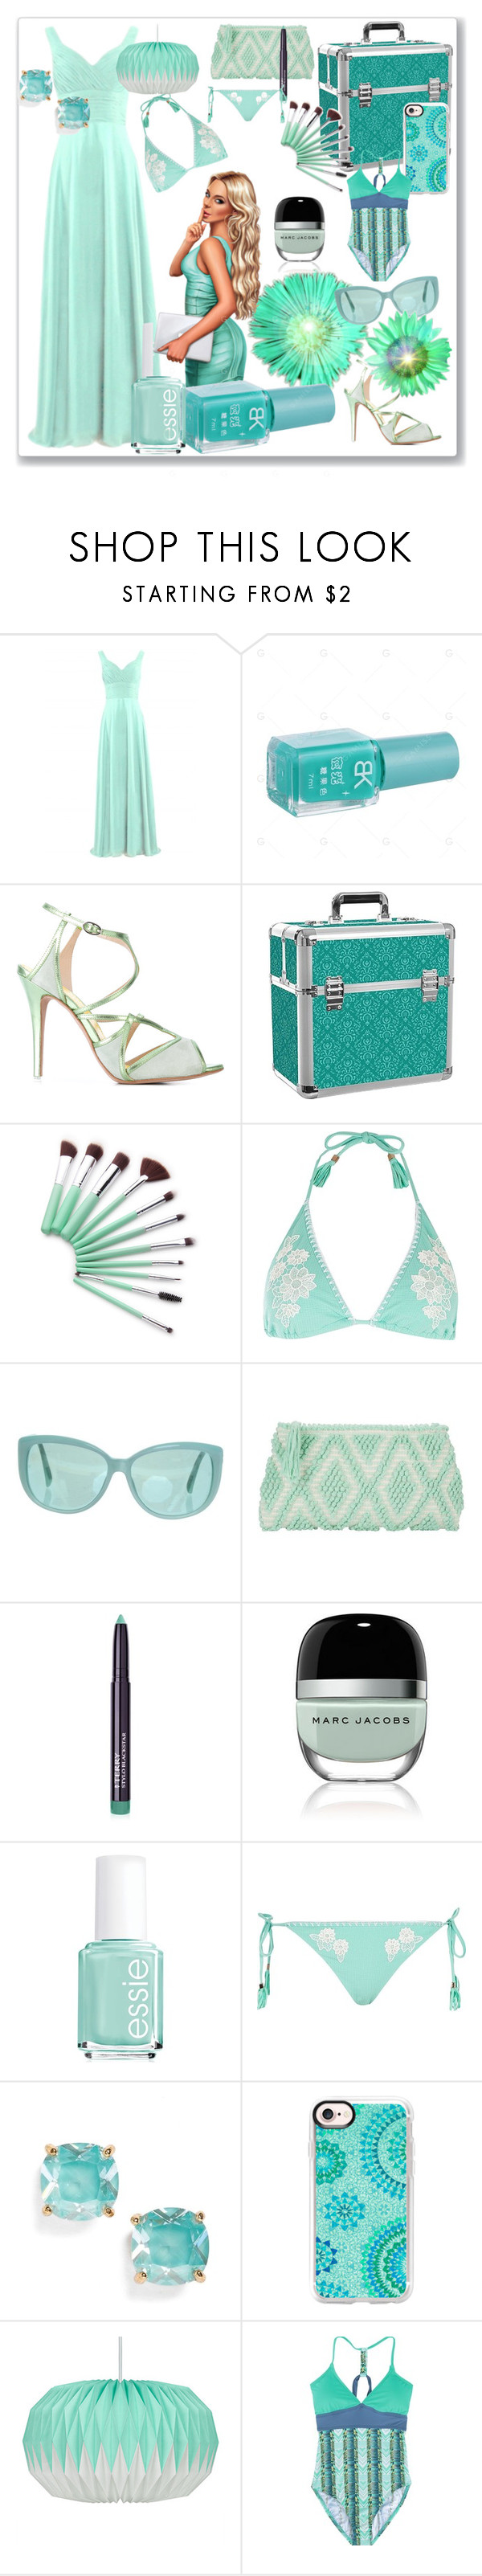 """""""Mint"""" by robbys73 on Polyvore featuring moda, Francesca Mambrini, River Island, Linda Farrow, Antonello Tedde, By Terry, Marc Jacobs, Essie, Kate Spade e Casetify"""